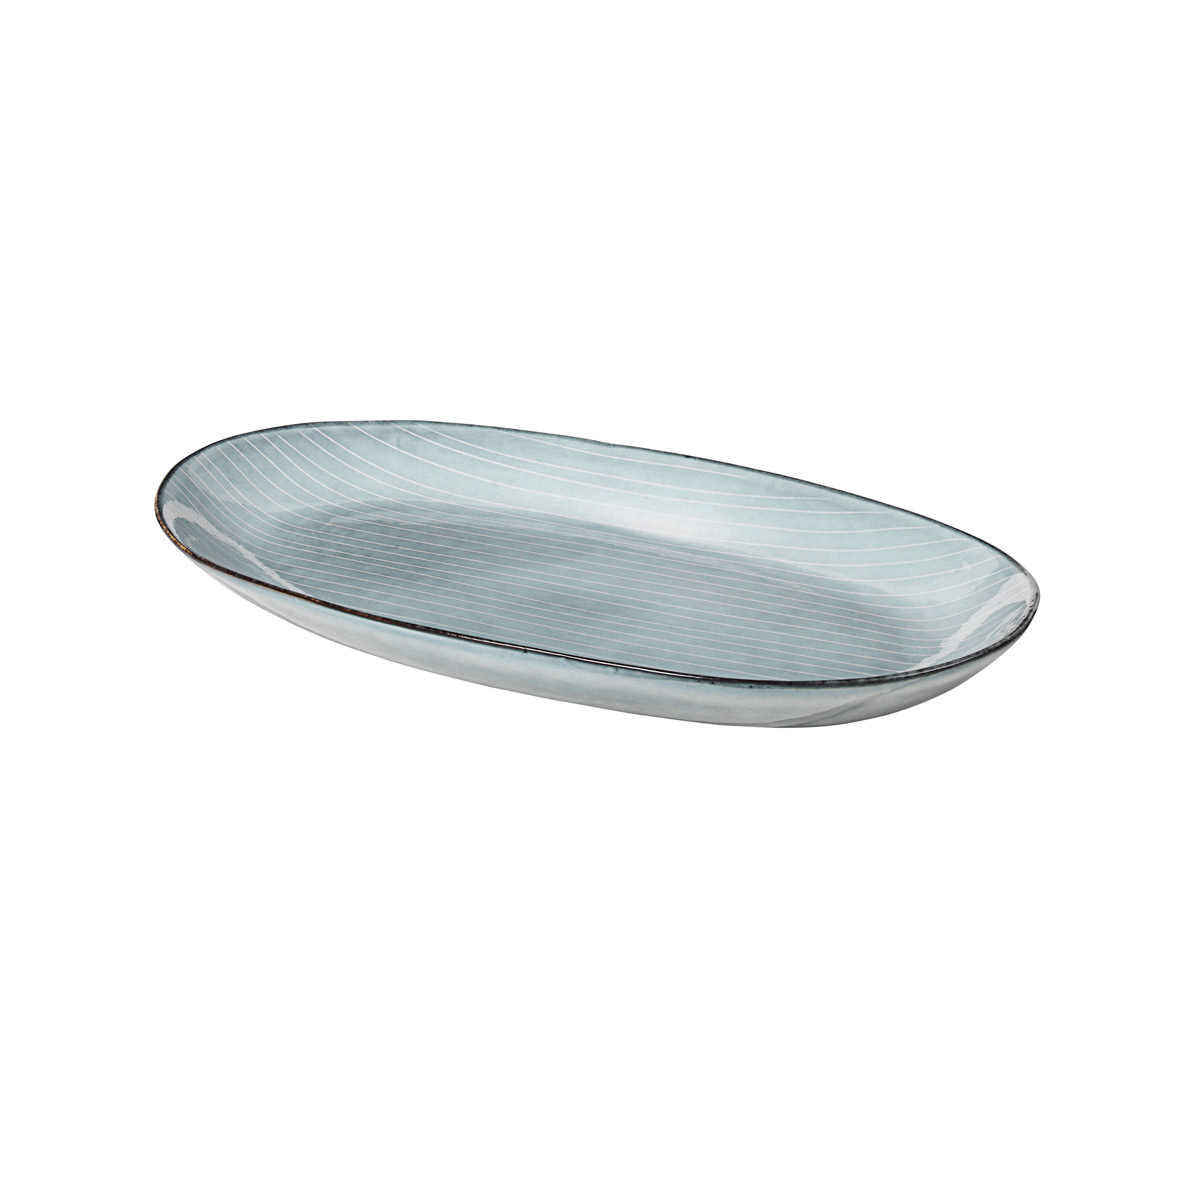 14533171-Nordic-Sea-Oval-Large-Serving-Plate